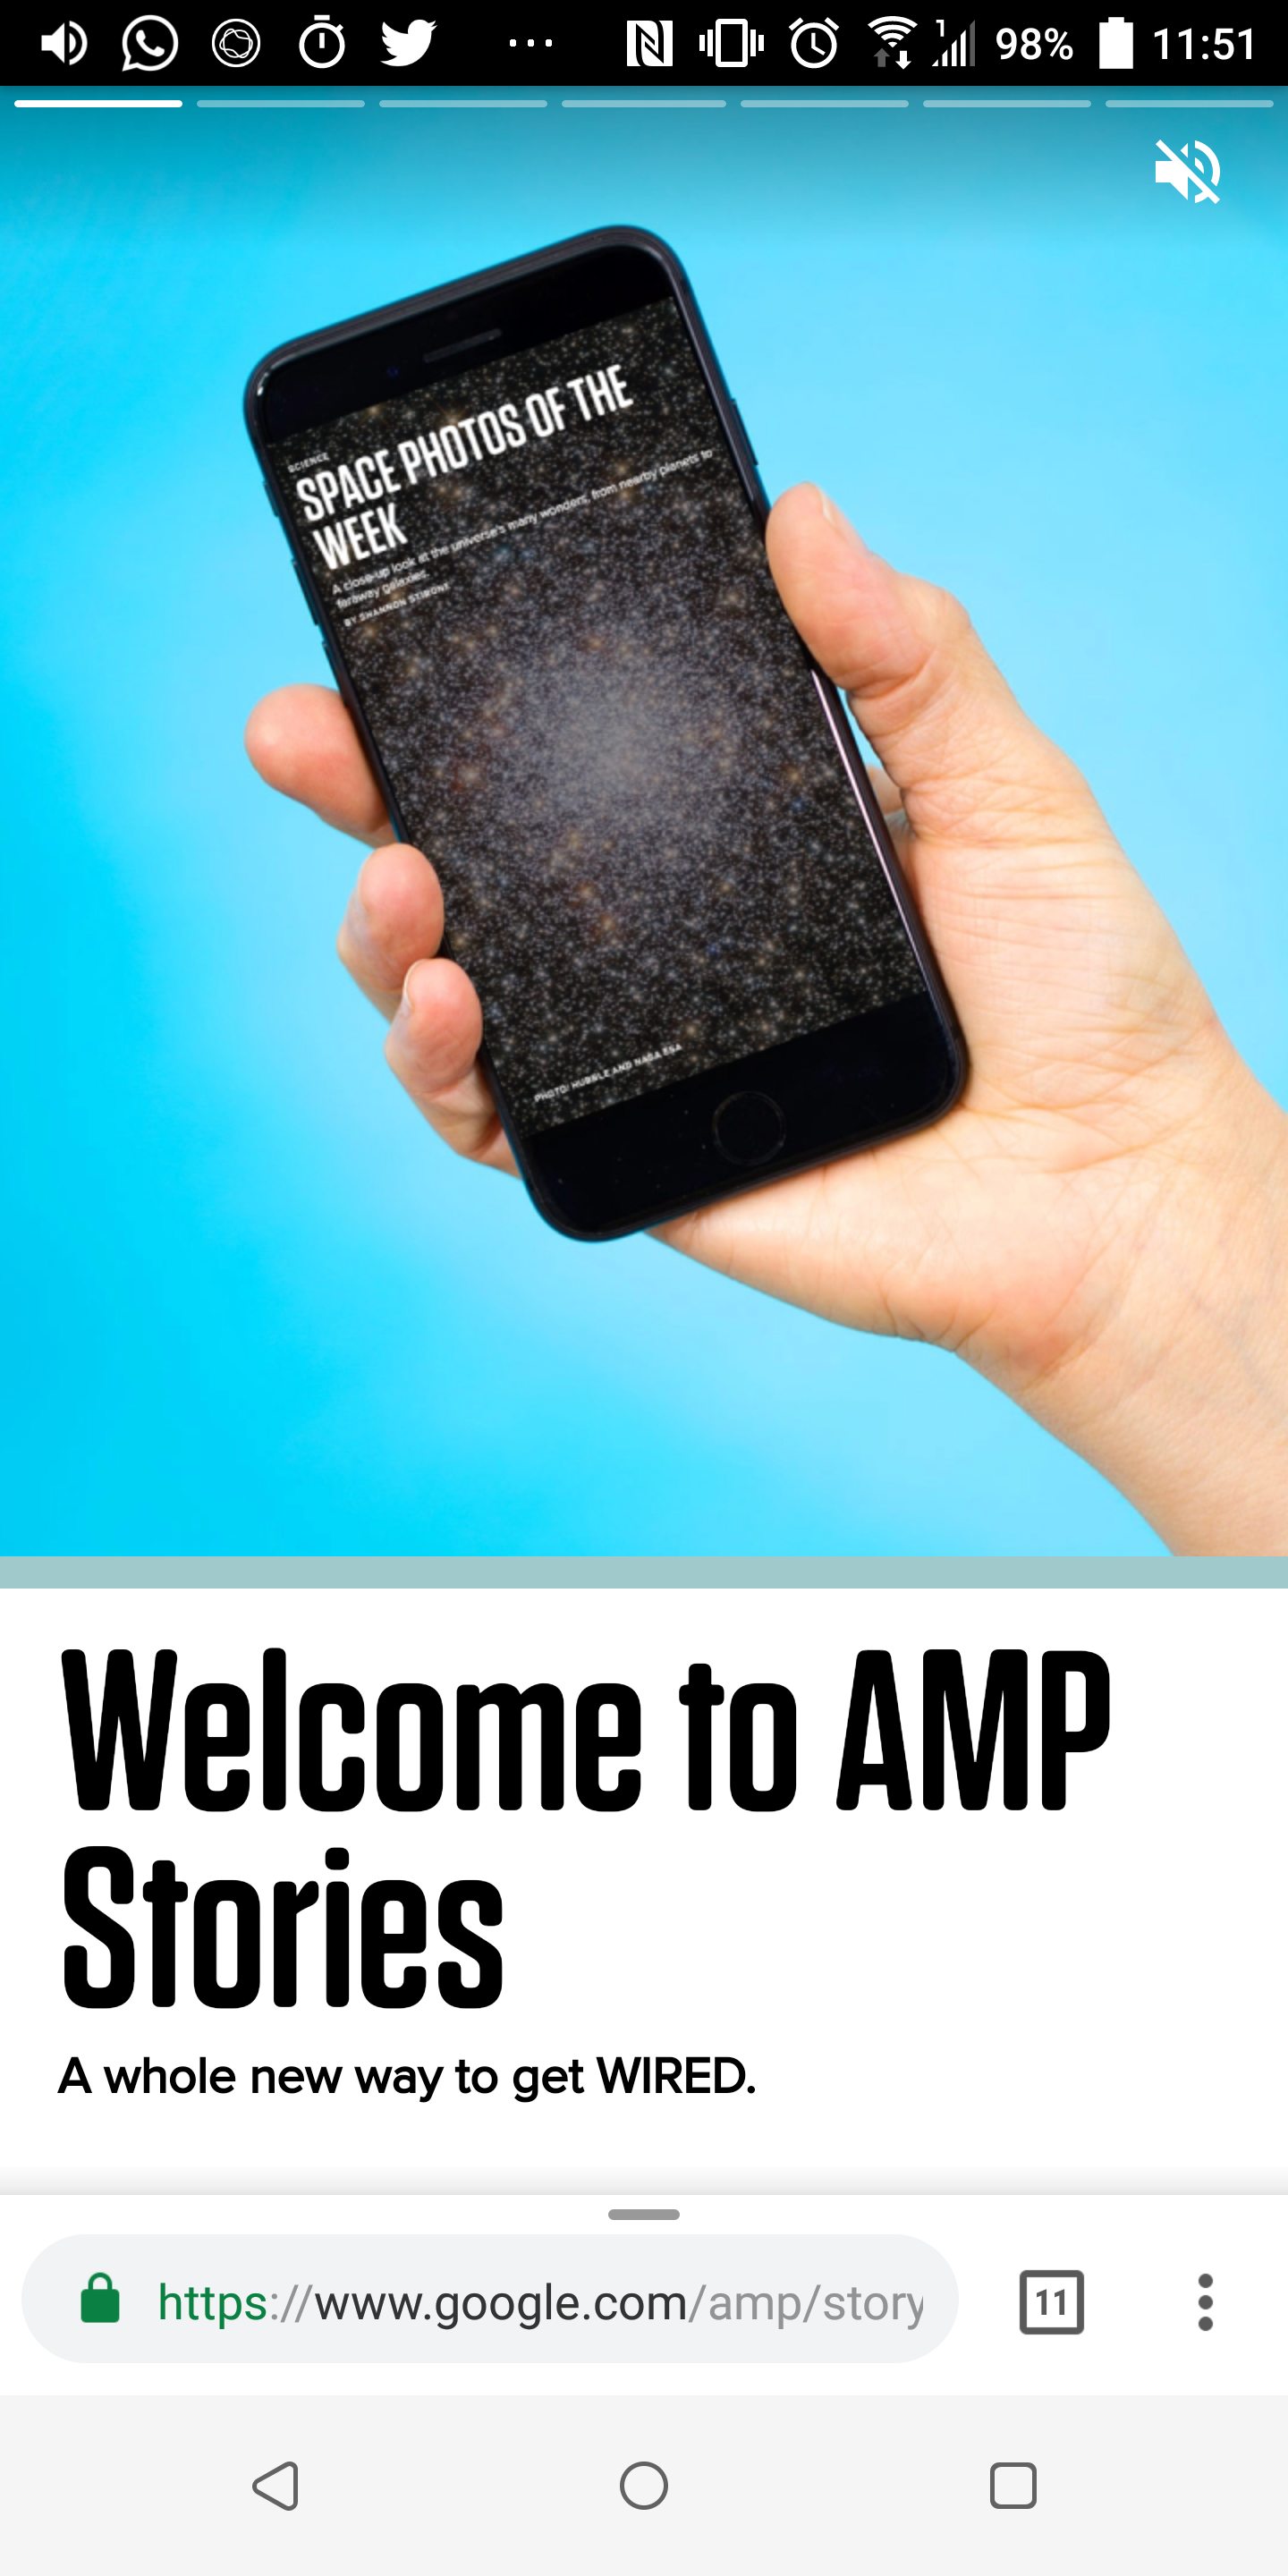 AMP Stories make news articles on Google Search more interactive